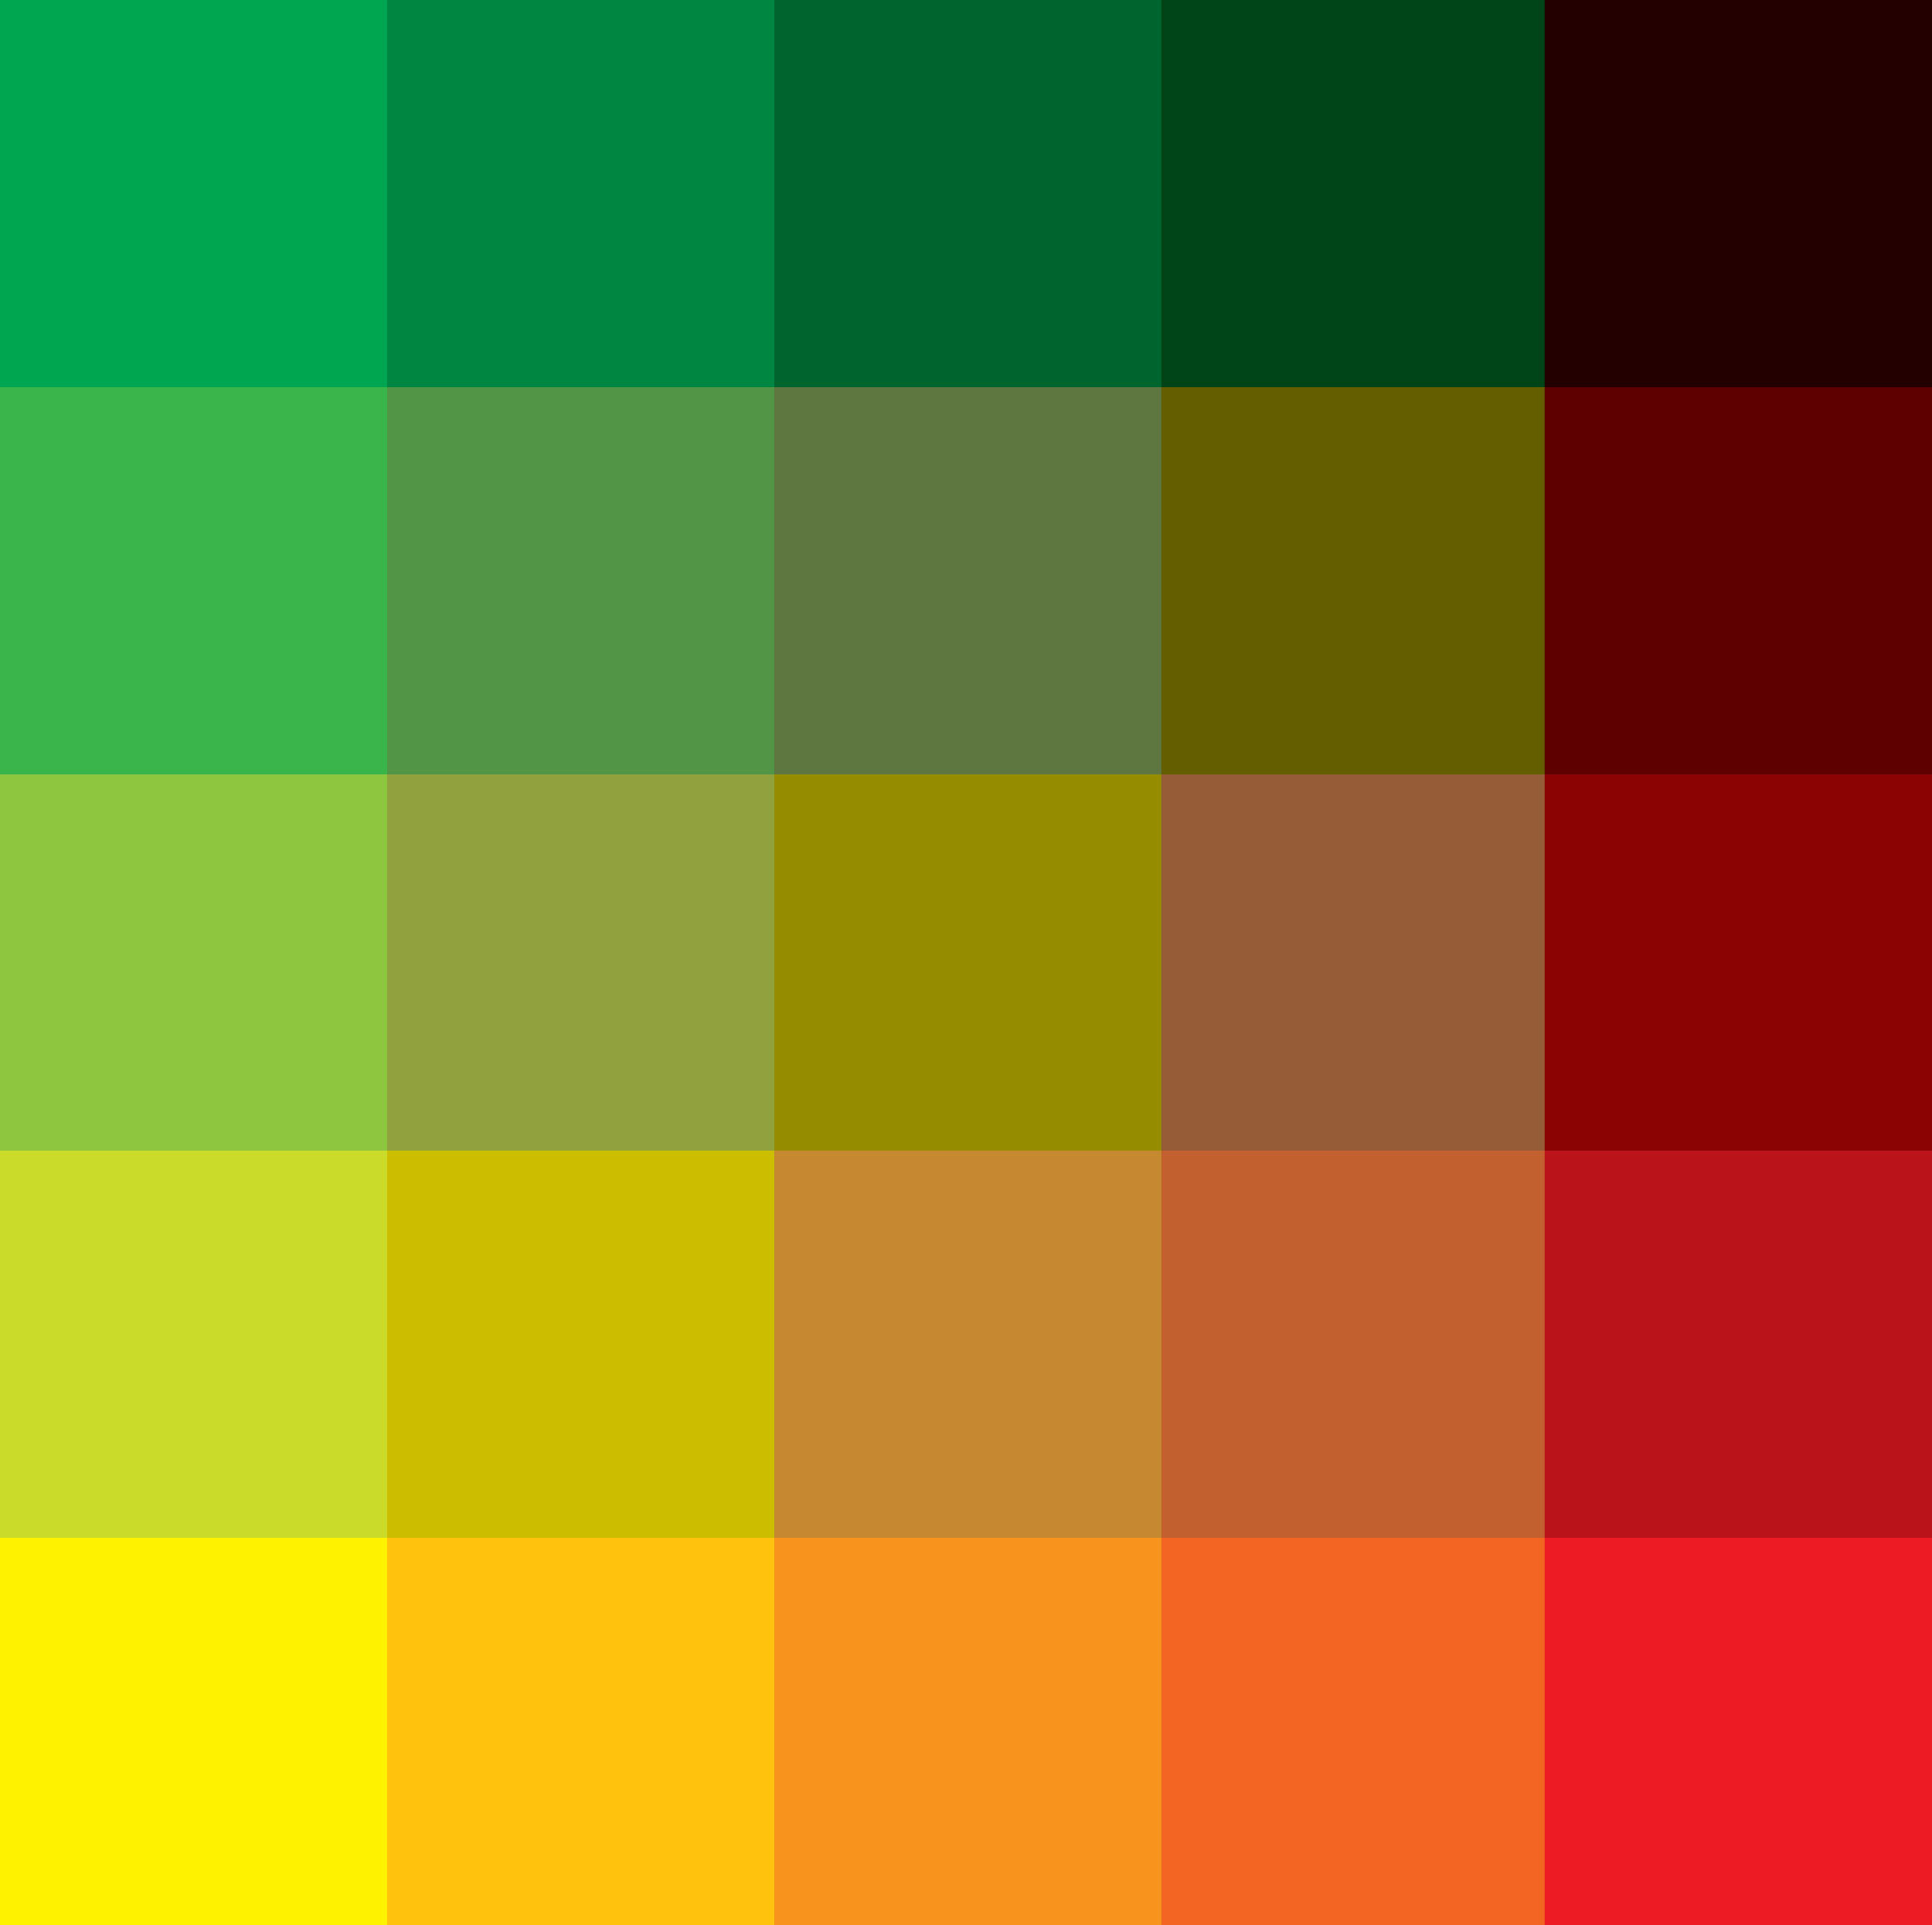 Red Green Yellow Understanding Color With How Art Works